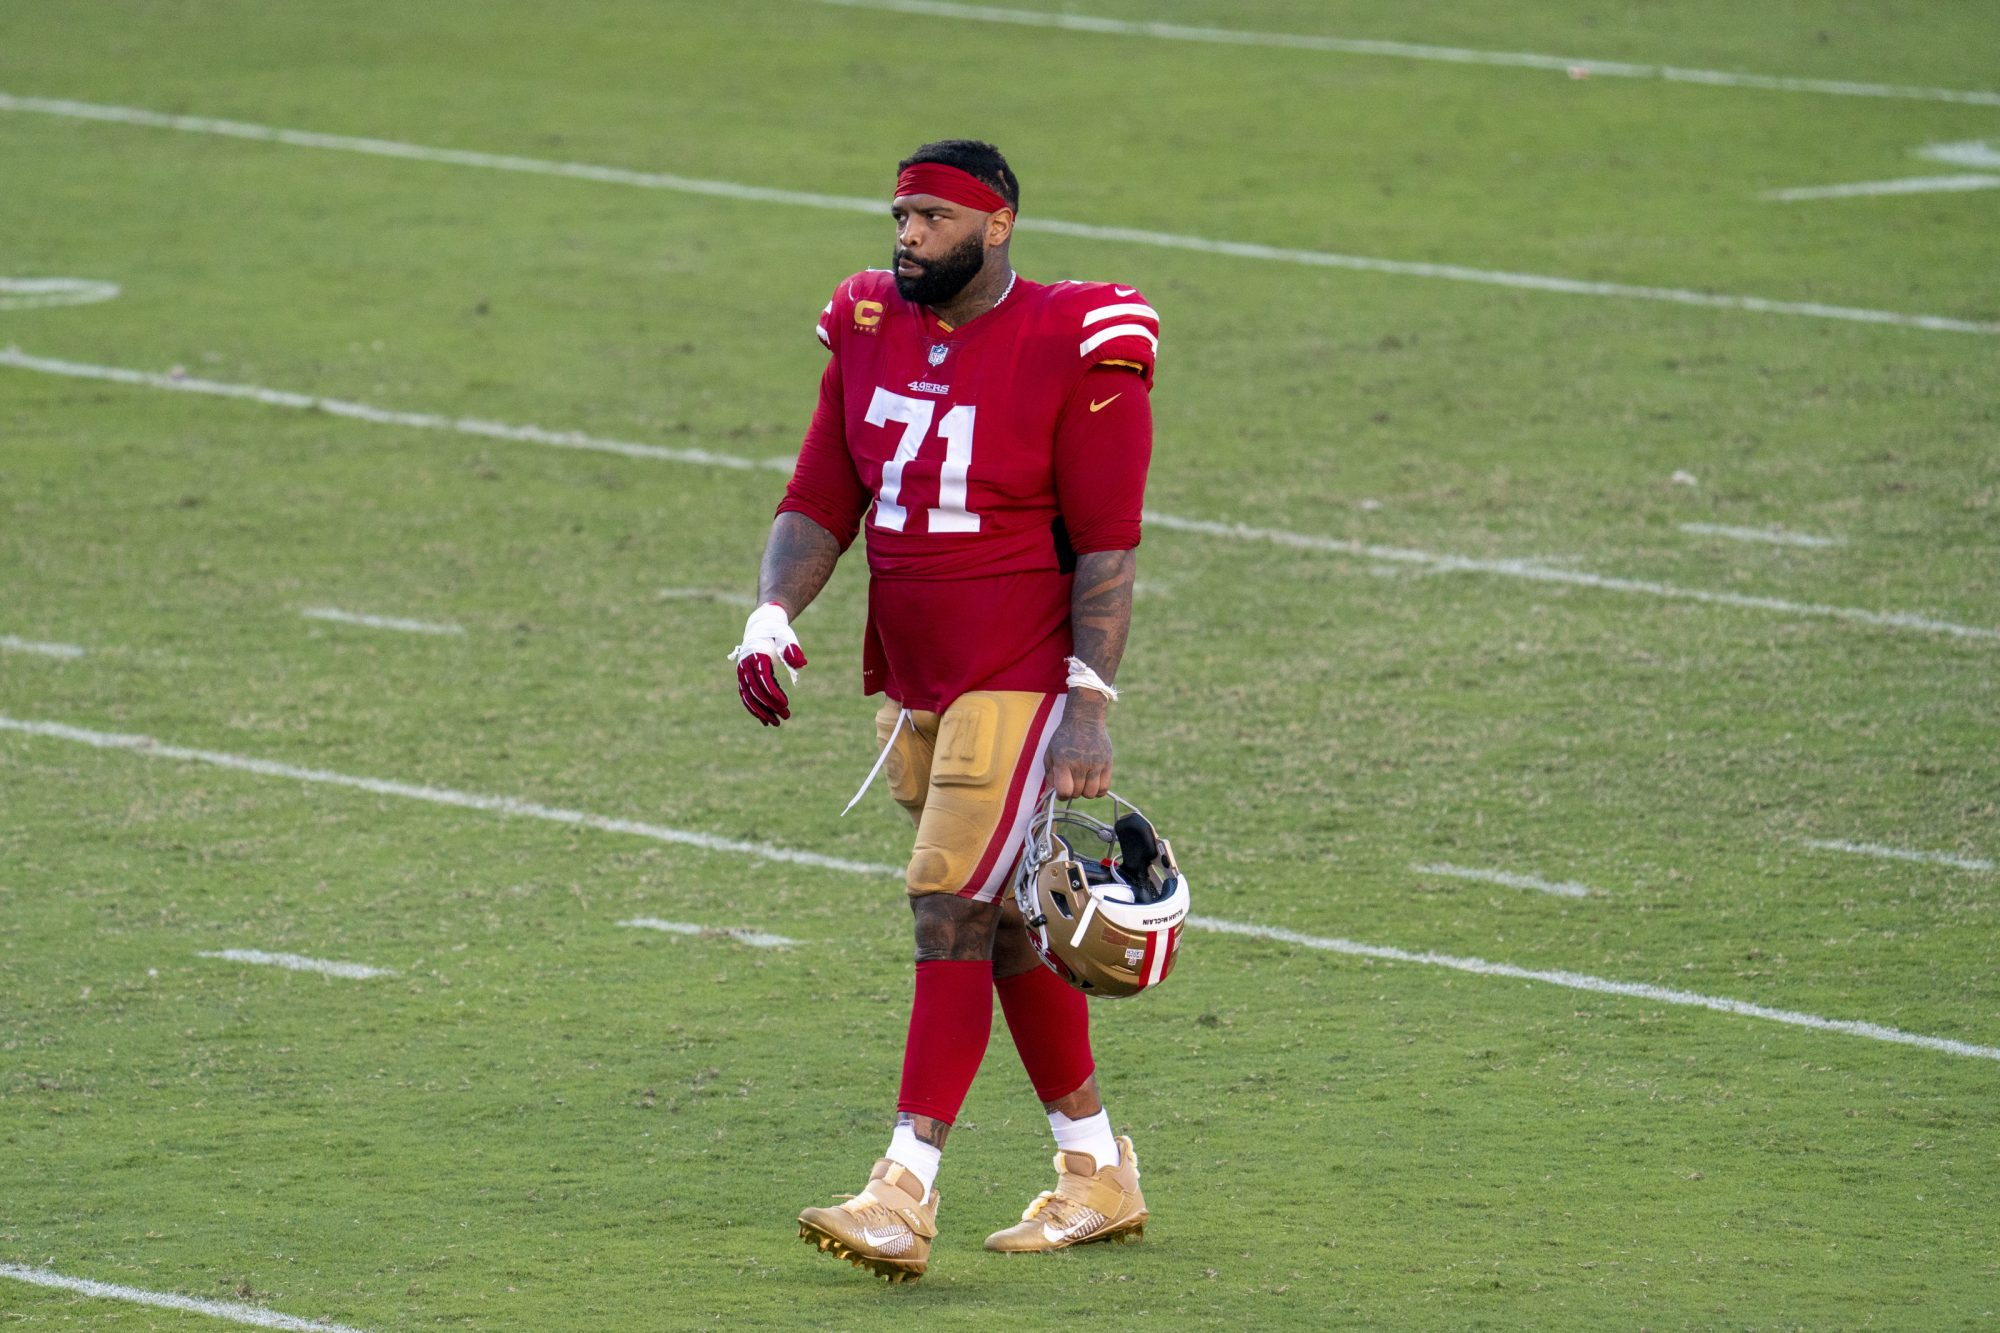 Trent Williams free agency: Three intriguing landing spots for Pro Bowler